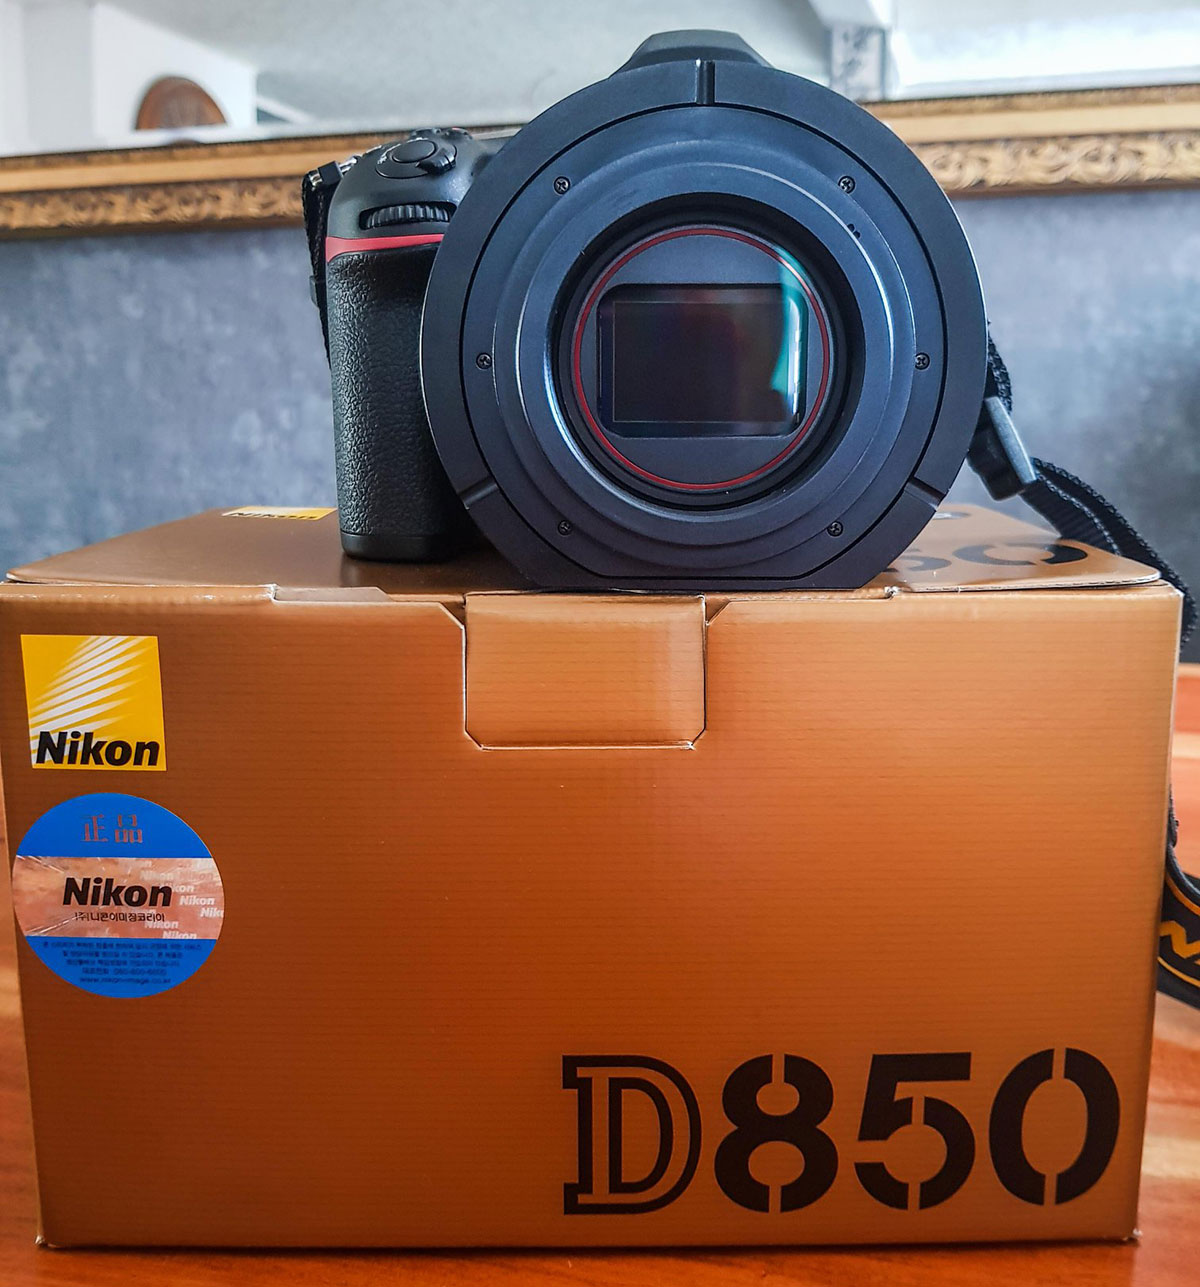 New: Nikon D850 cooled camera for astrophotography - Nikon